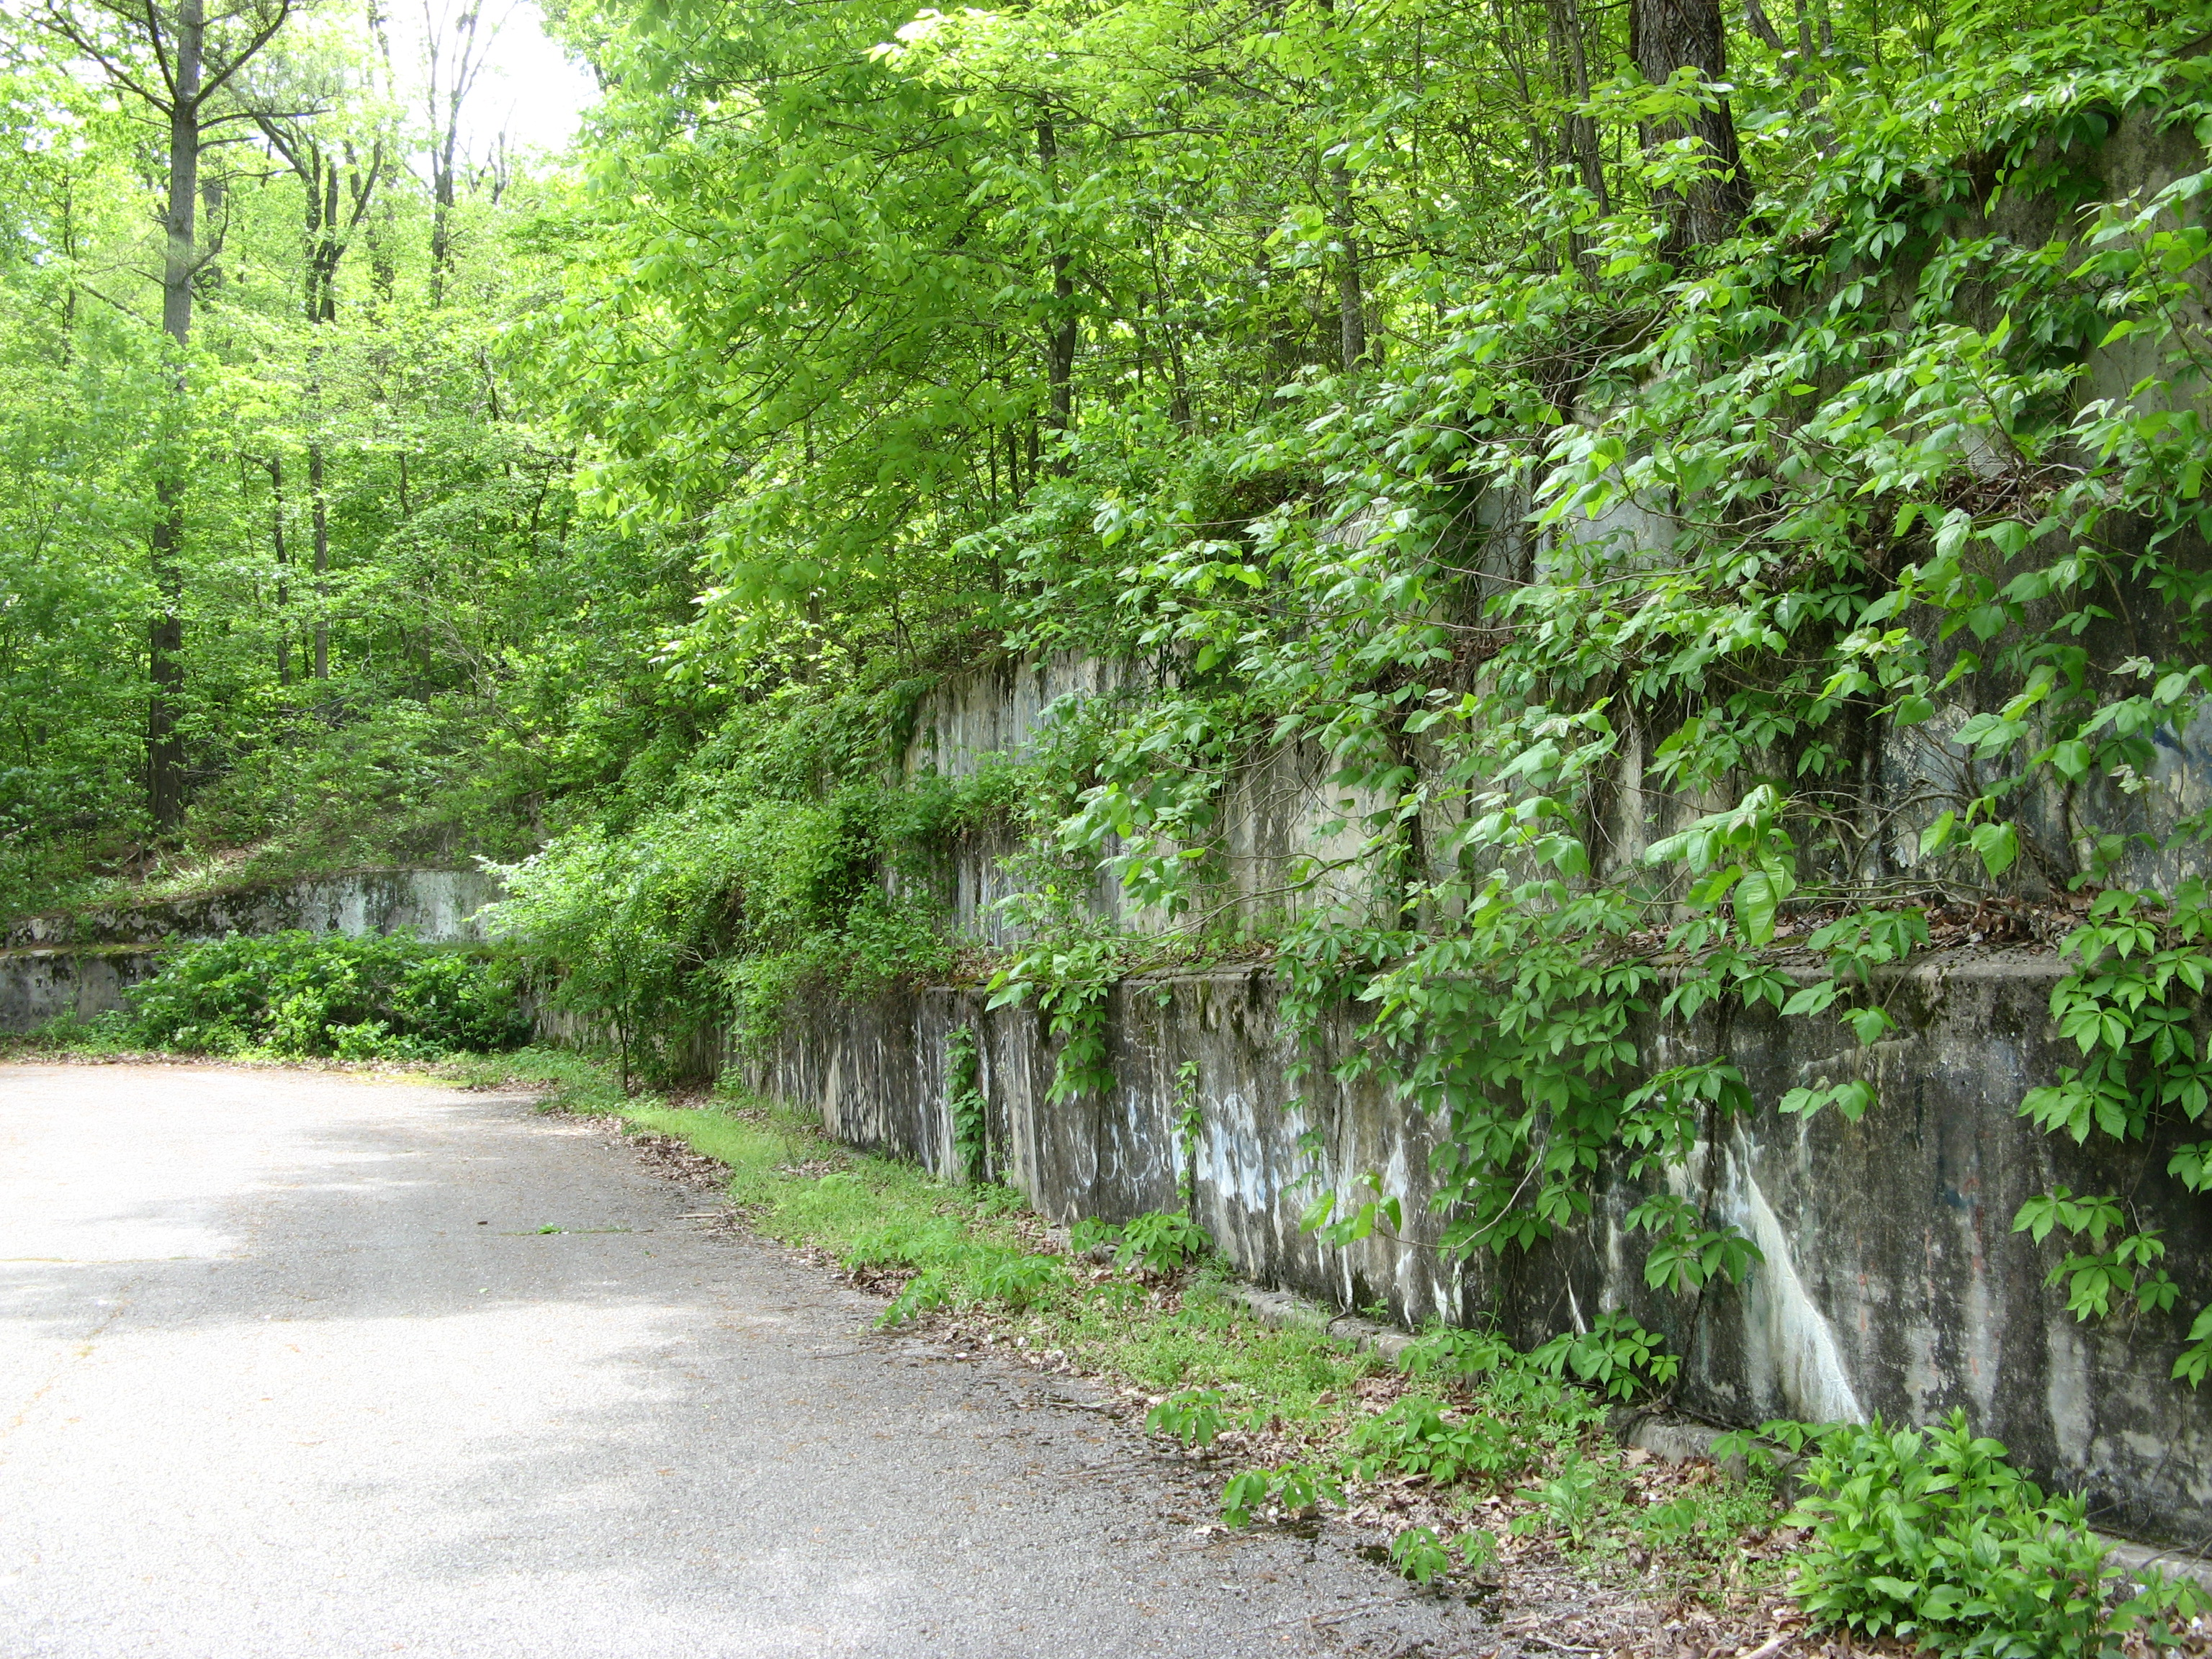 Retaining wall with greenery